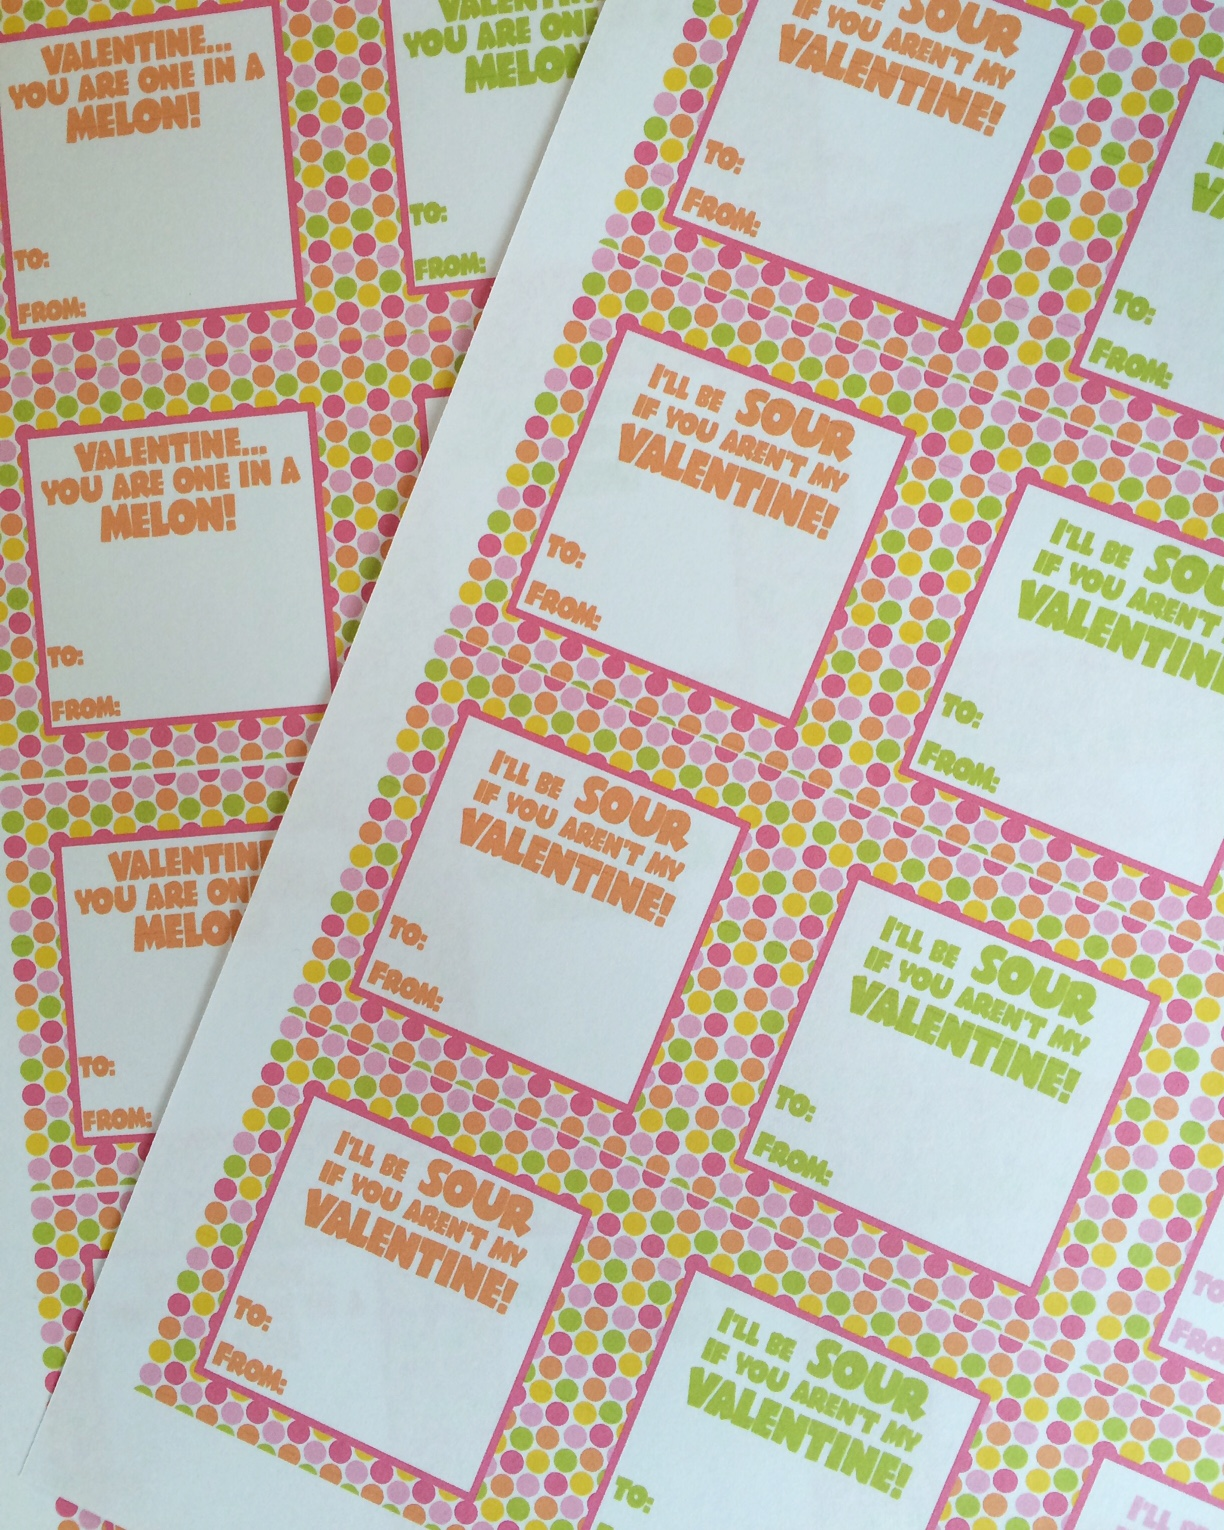 The Larson Lingo Sour Patch Kids Amp Sour Watermelon Valentines Free Printables